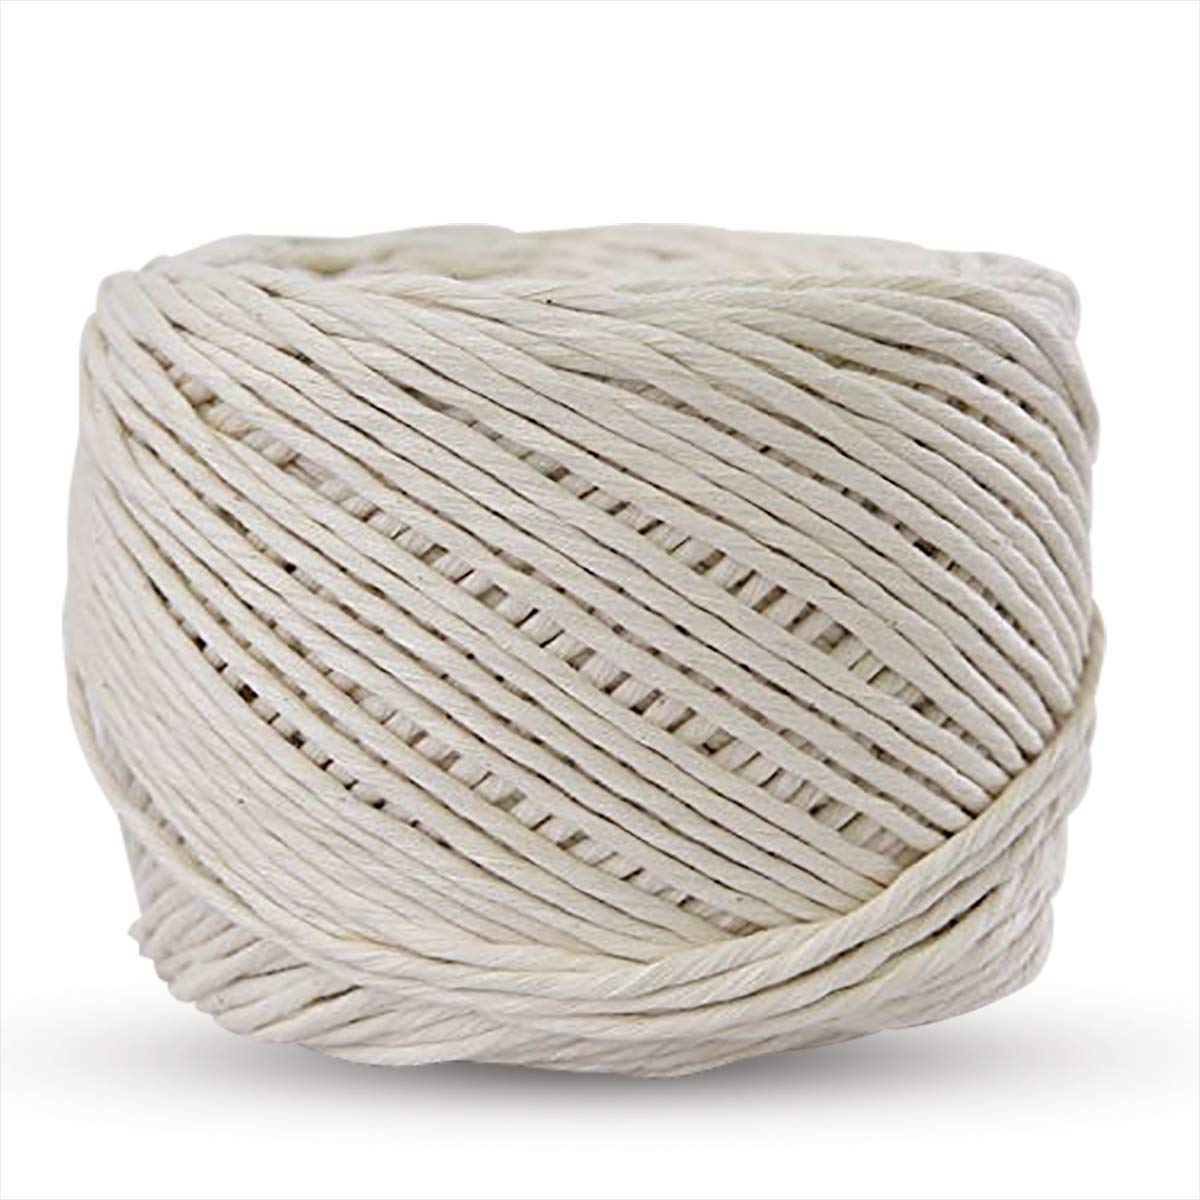 SUNTQ Handmade Decorations Softer Natural Cotton Bohemia Macrame Cord DIY Wall Hanging Plant Hanger Craft Making Knitting Cord Rope Natural Color (Natural Color, 4mm)